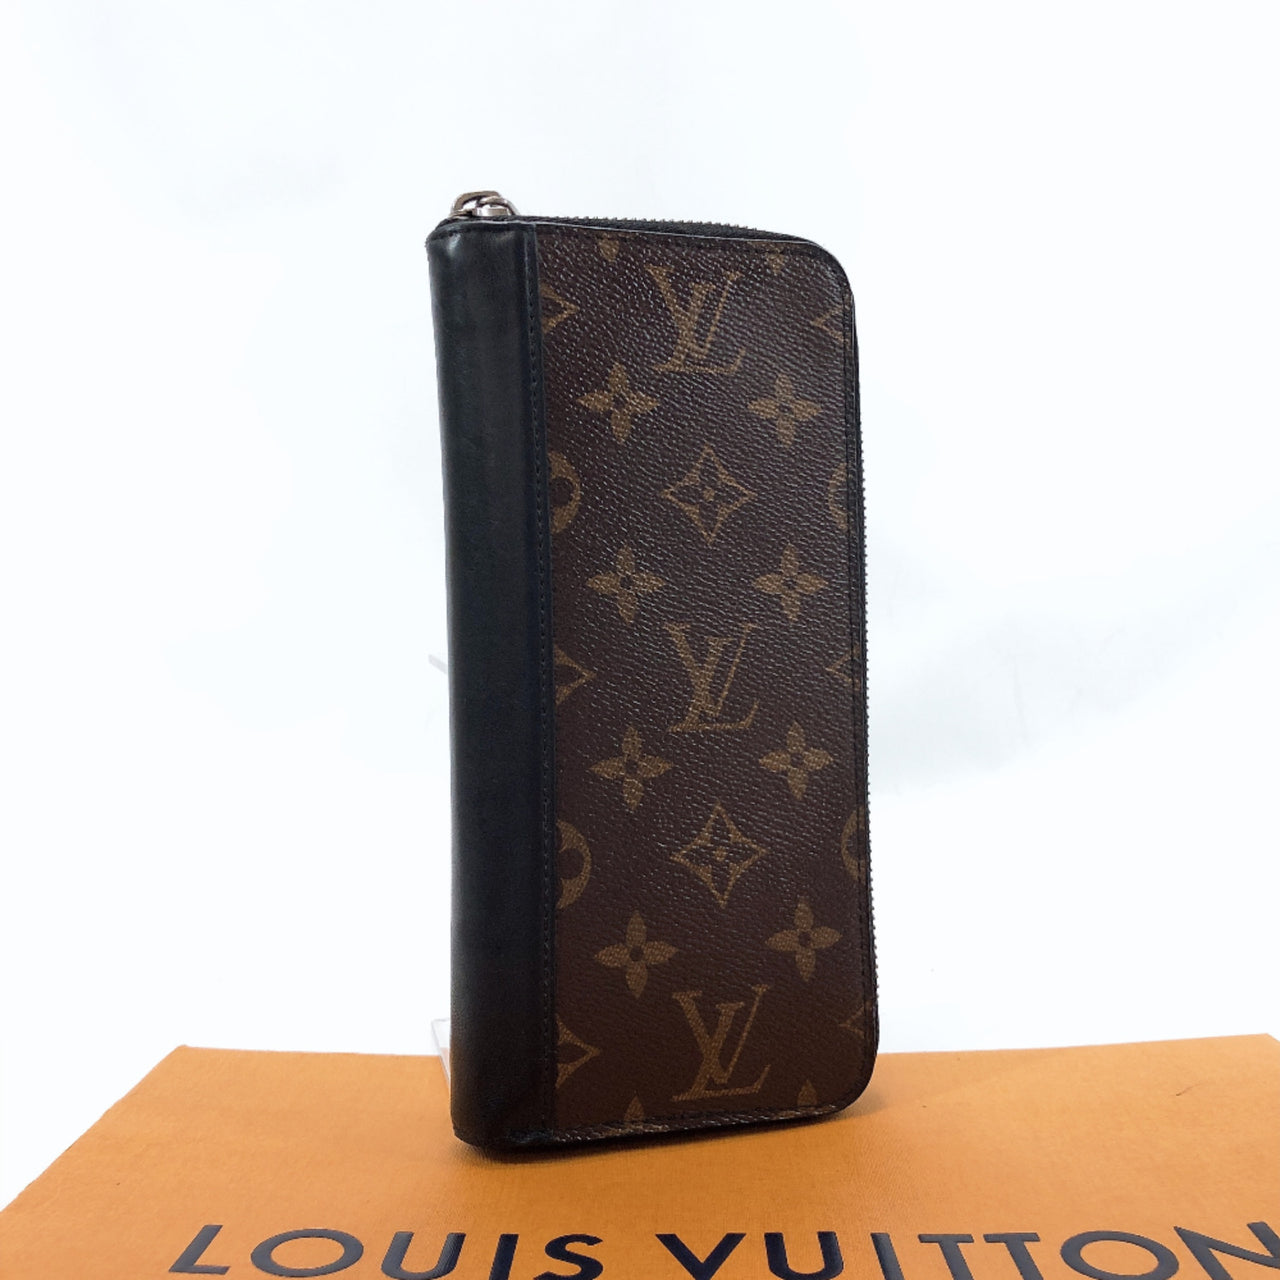 LOUIS VUITTON purse M60109 Macassar zippy wallet Vertical/Monogram Brown black Used